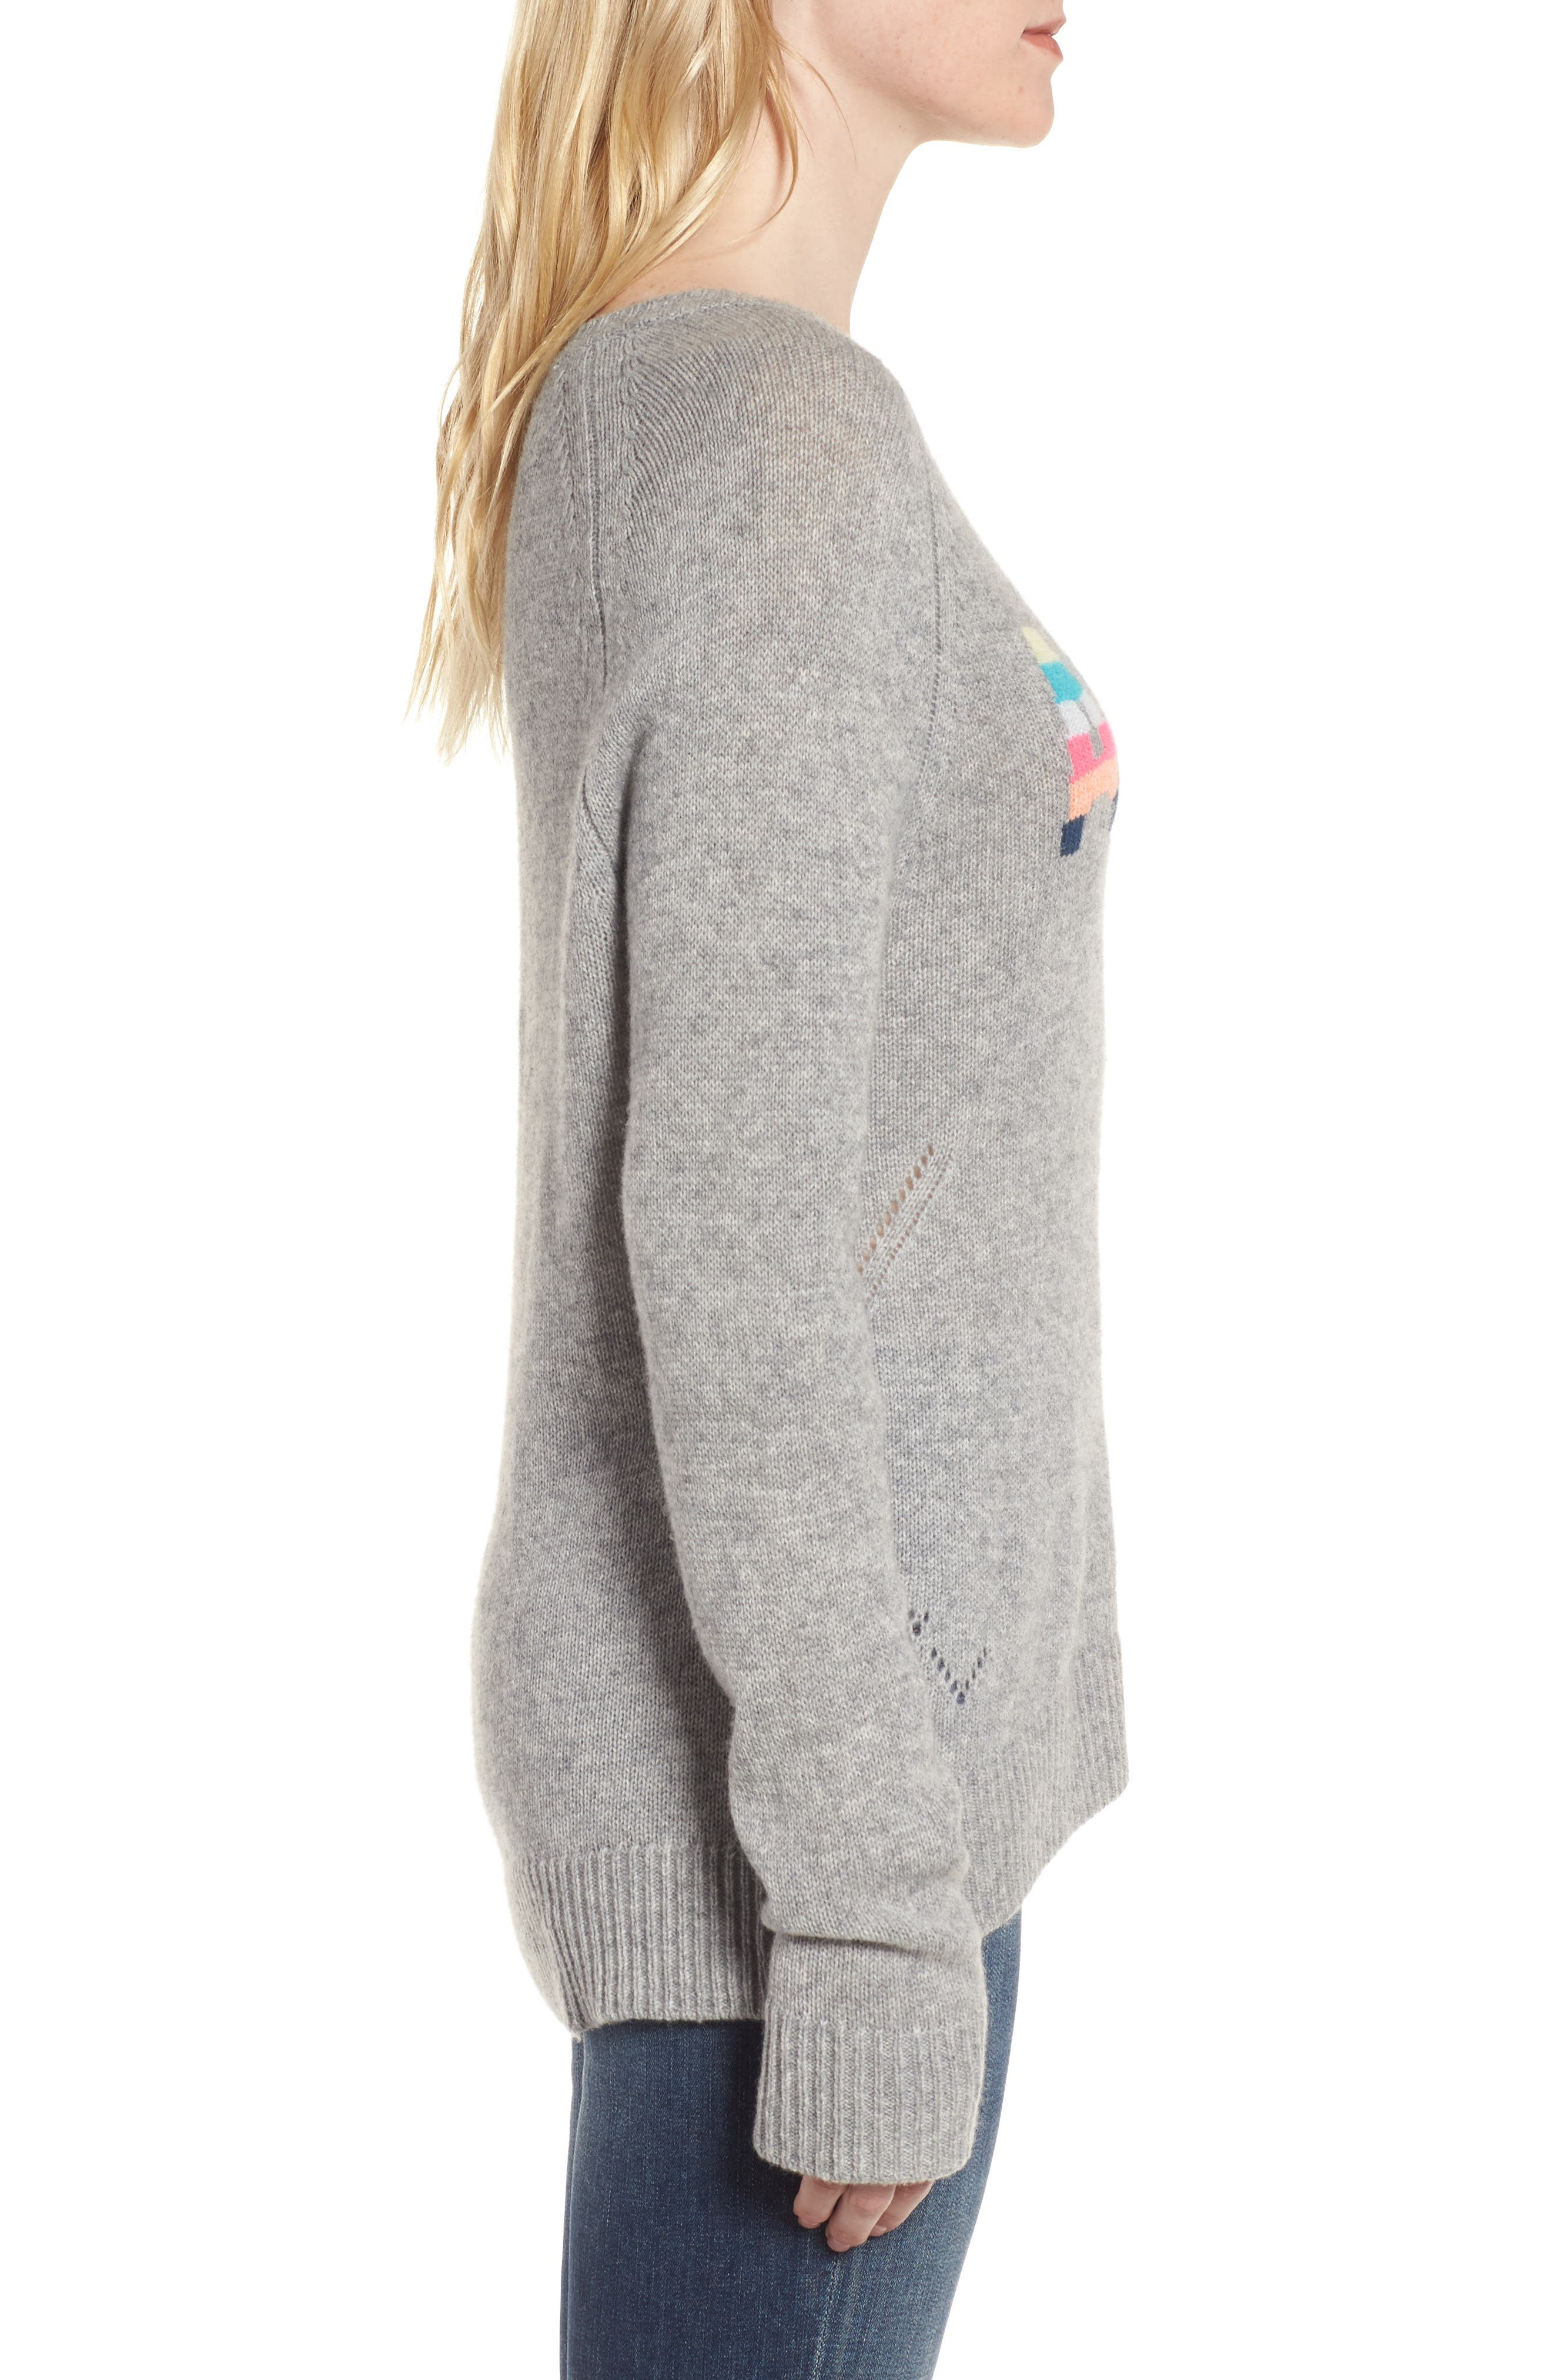 Baly Bis Cashmere Sweater,                             Alternate thumbnail 3, color,                             078